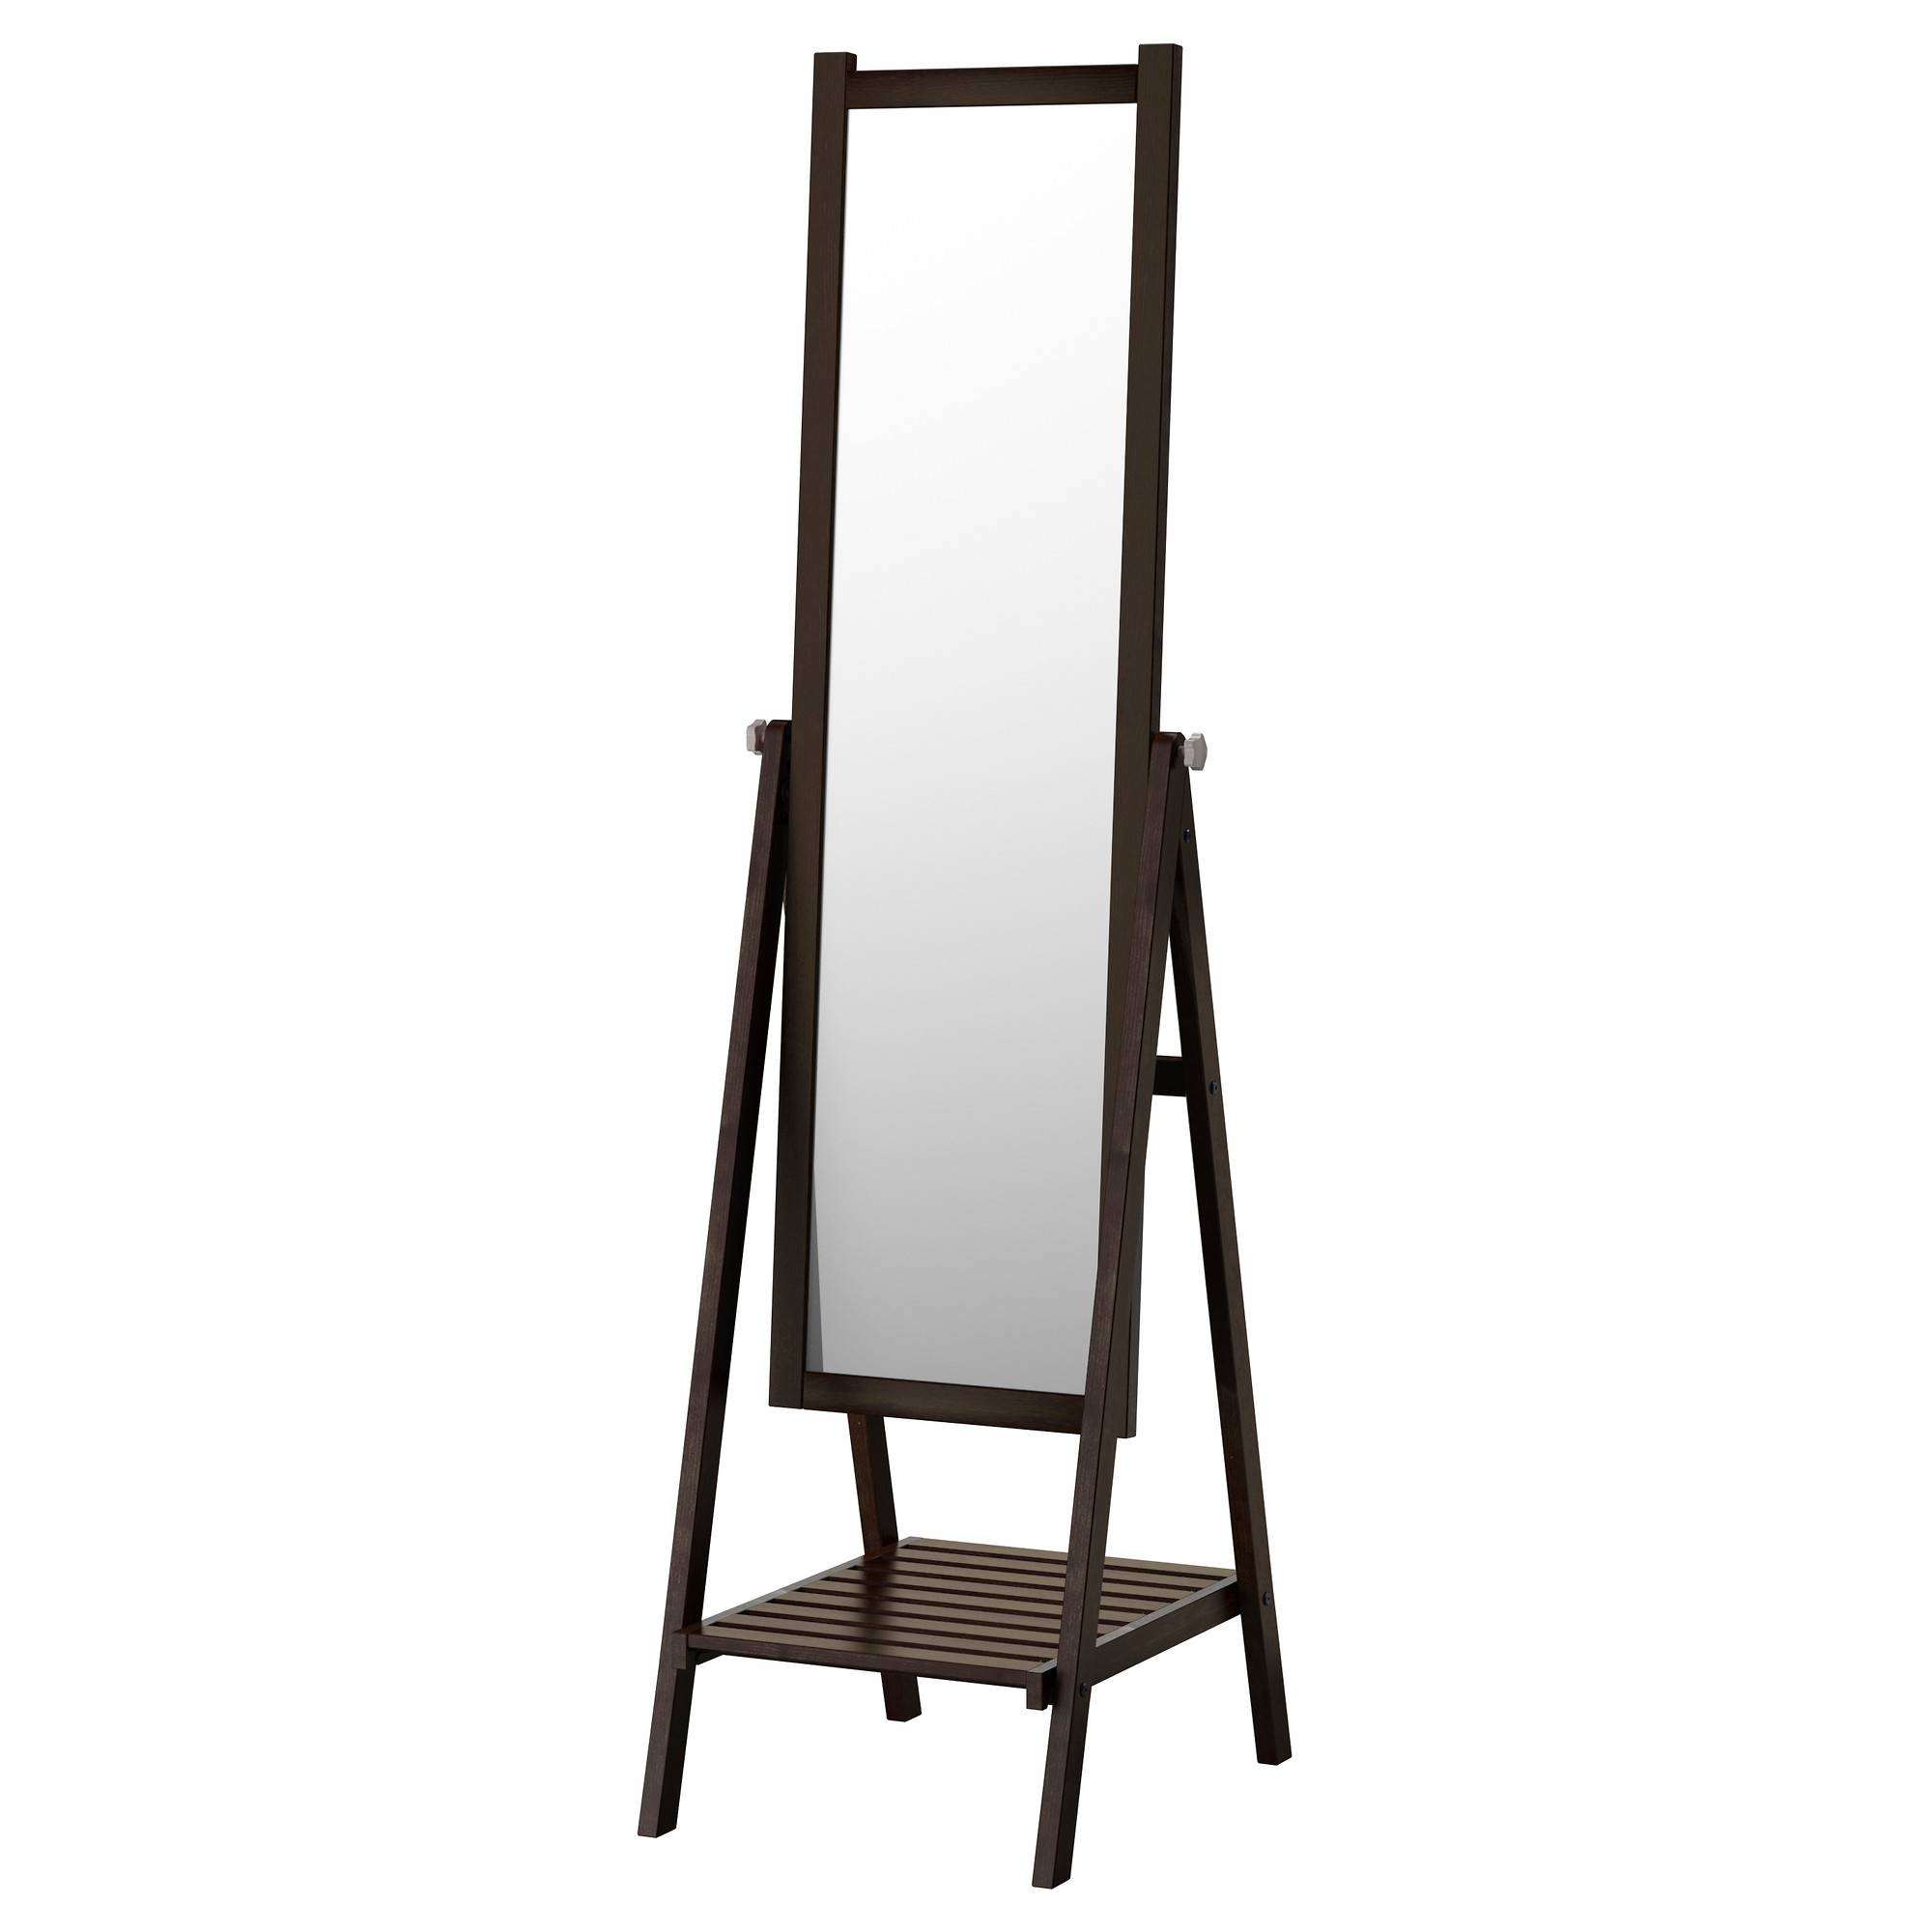 Full-Length Mirrors - Ikea with regard to Oval Freestanding Mirrors (Image 18 of 25)